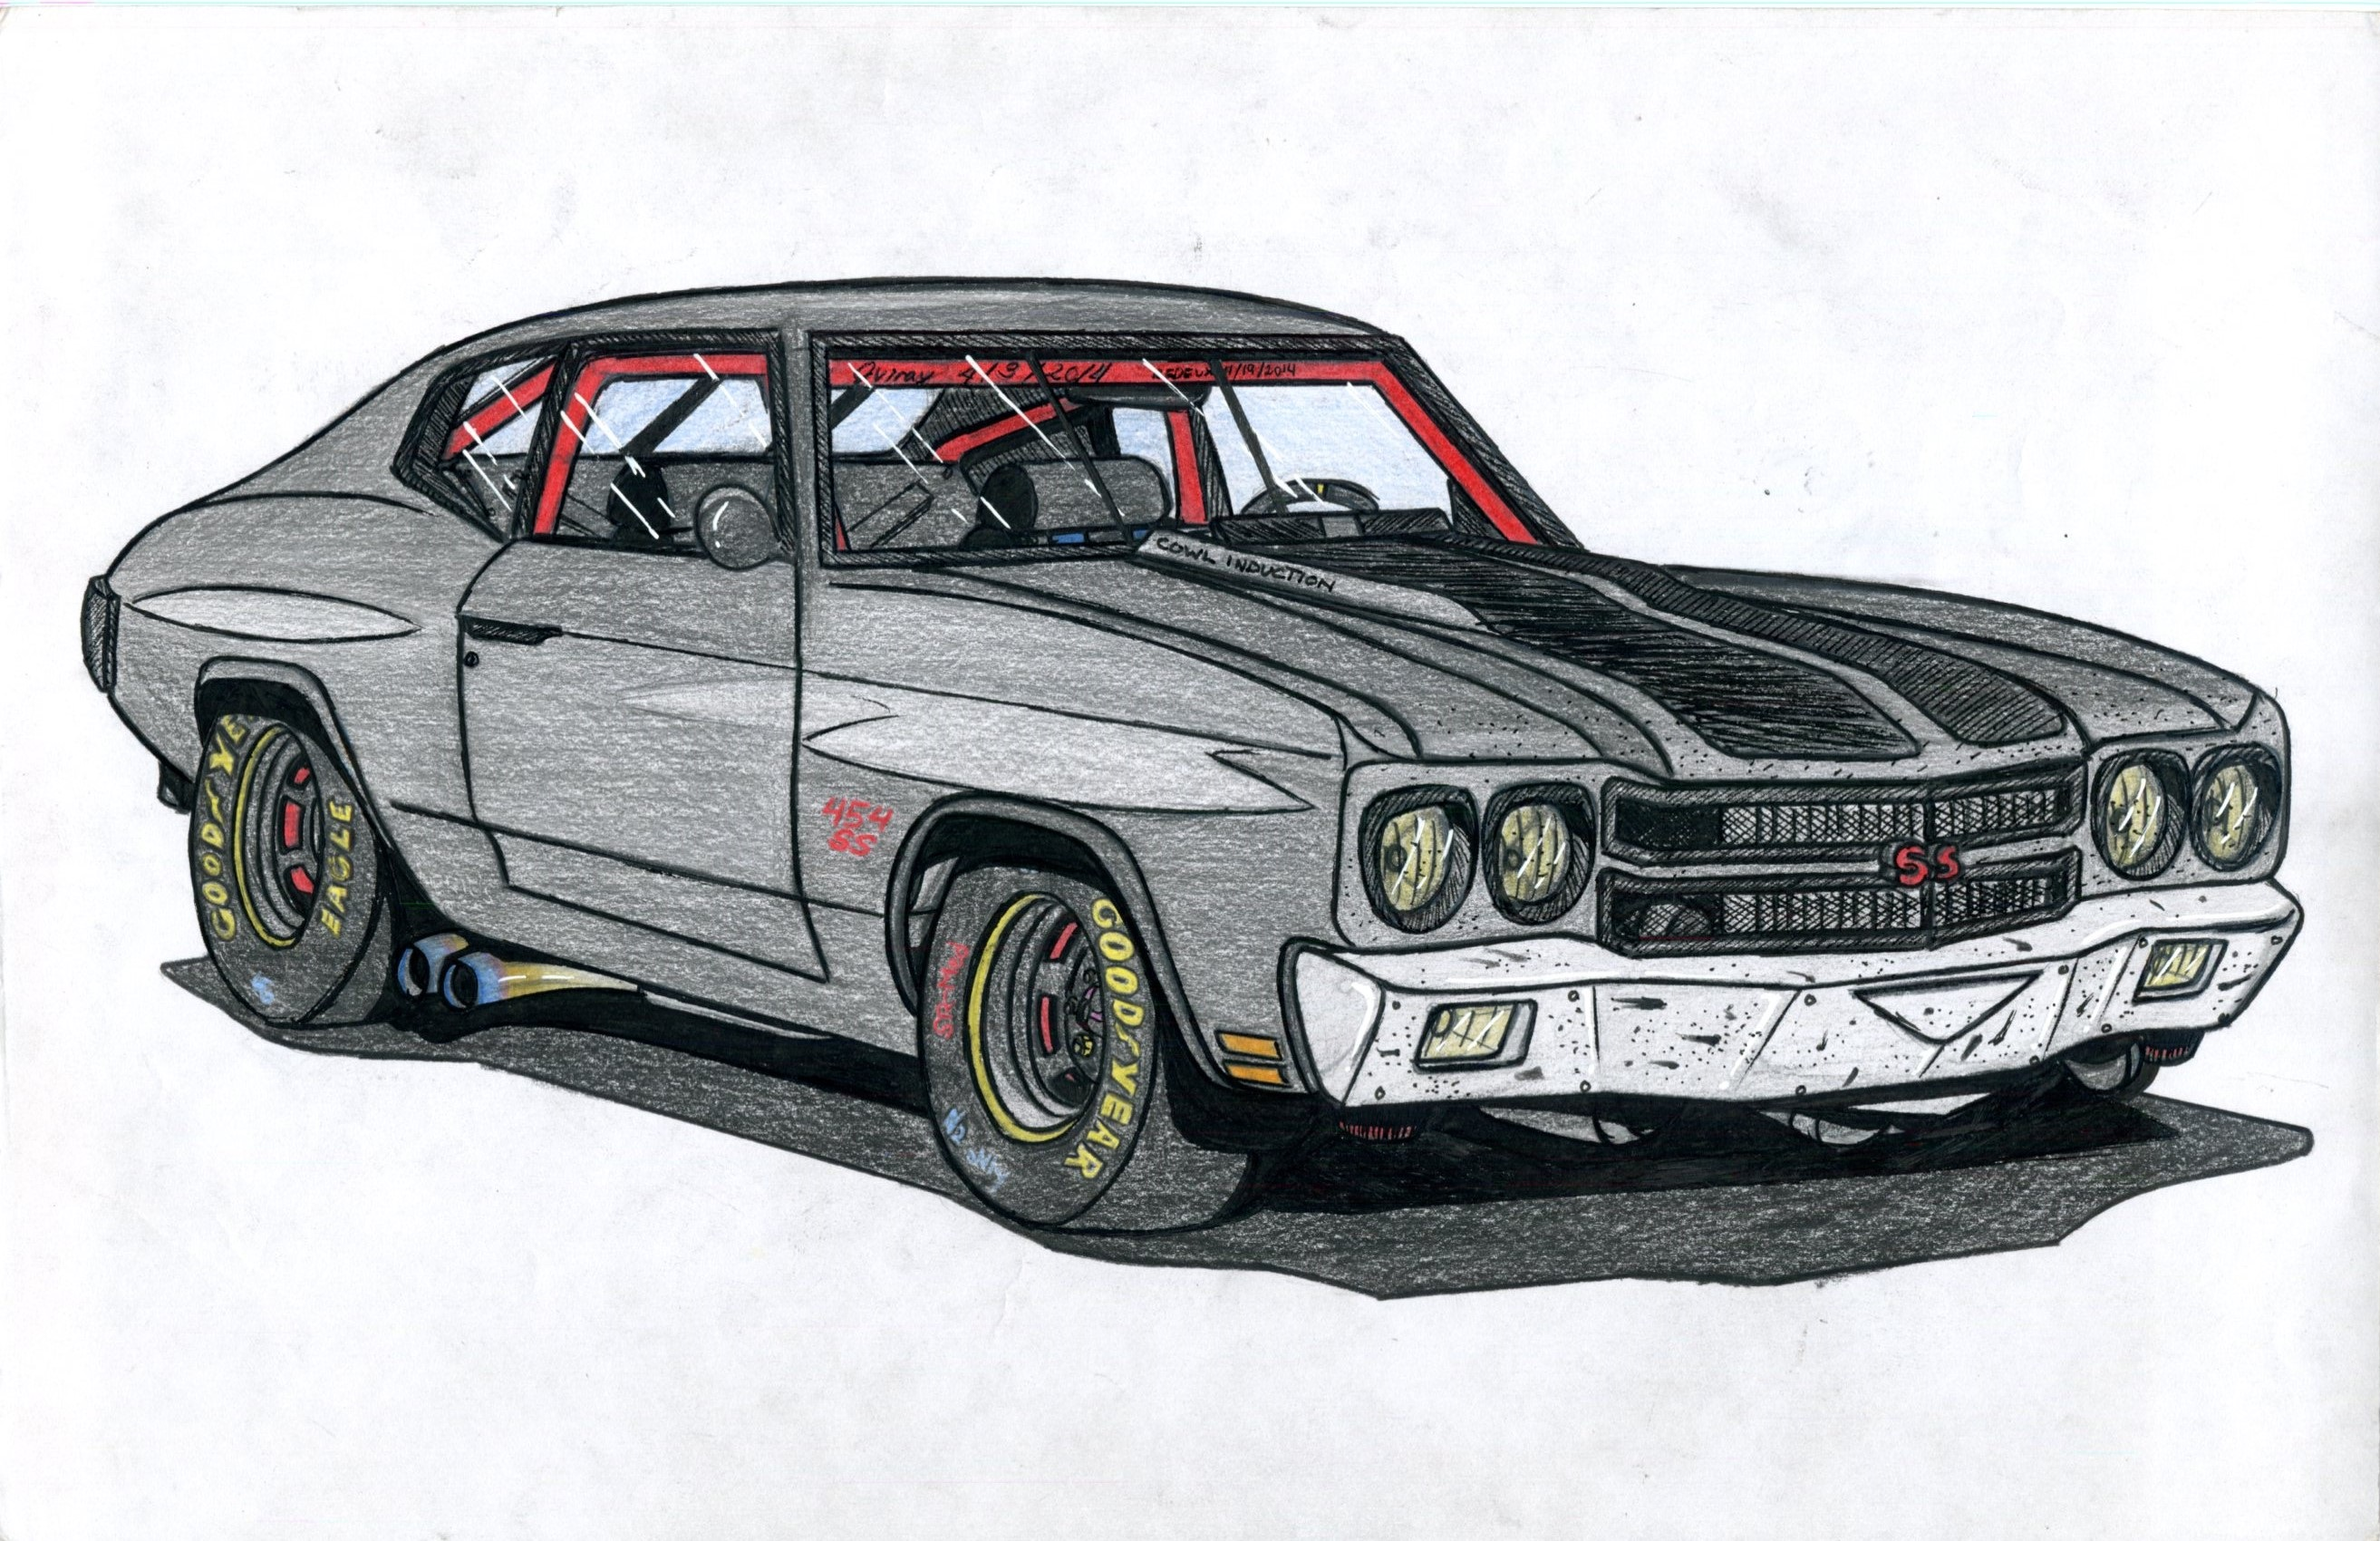 Found this in my USB  It's a track-prepped 70' Chevy Chevelle SS 454